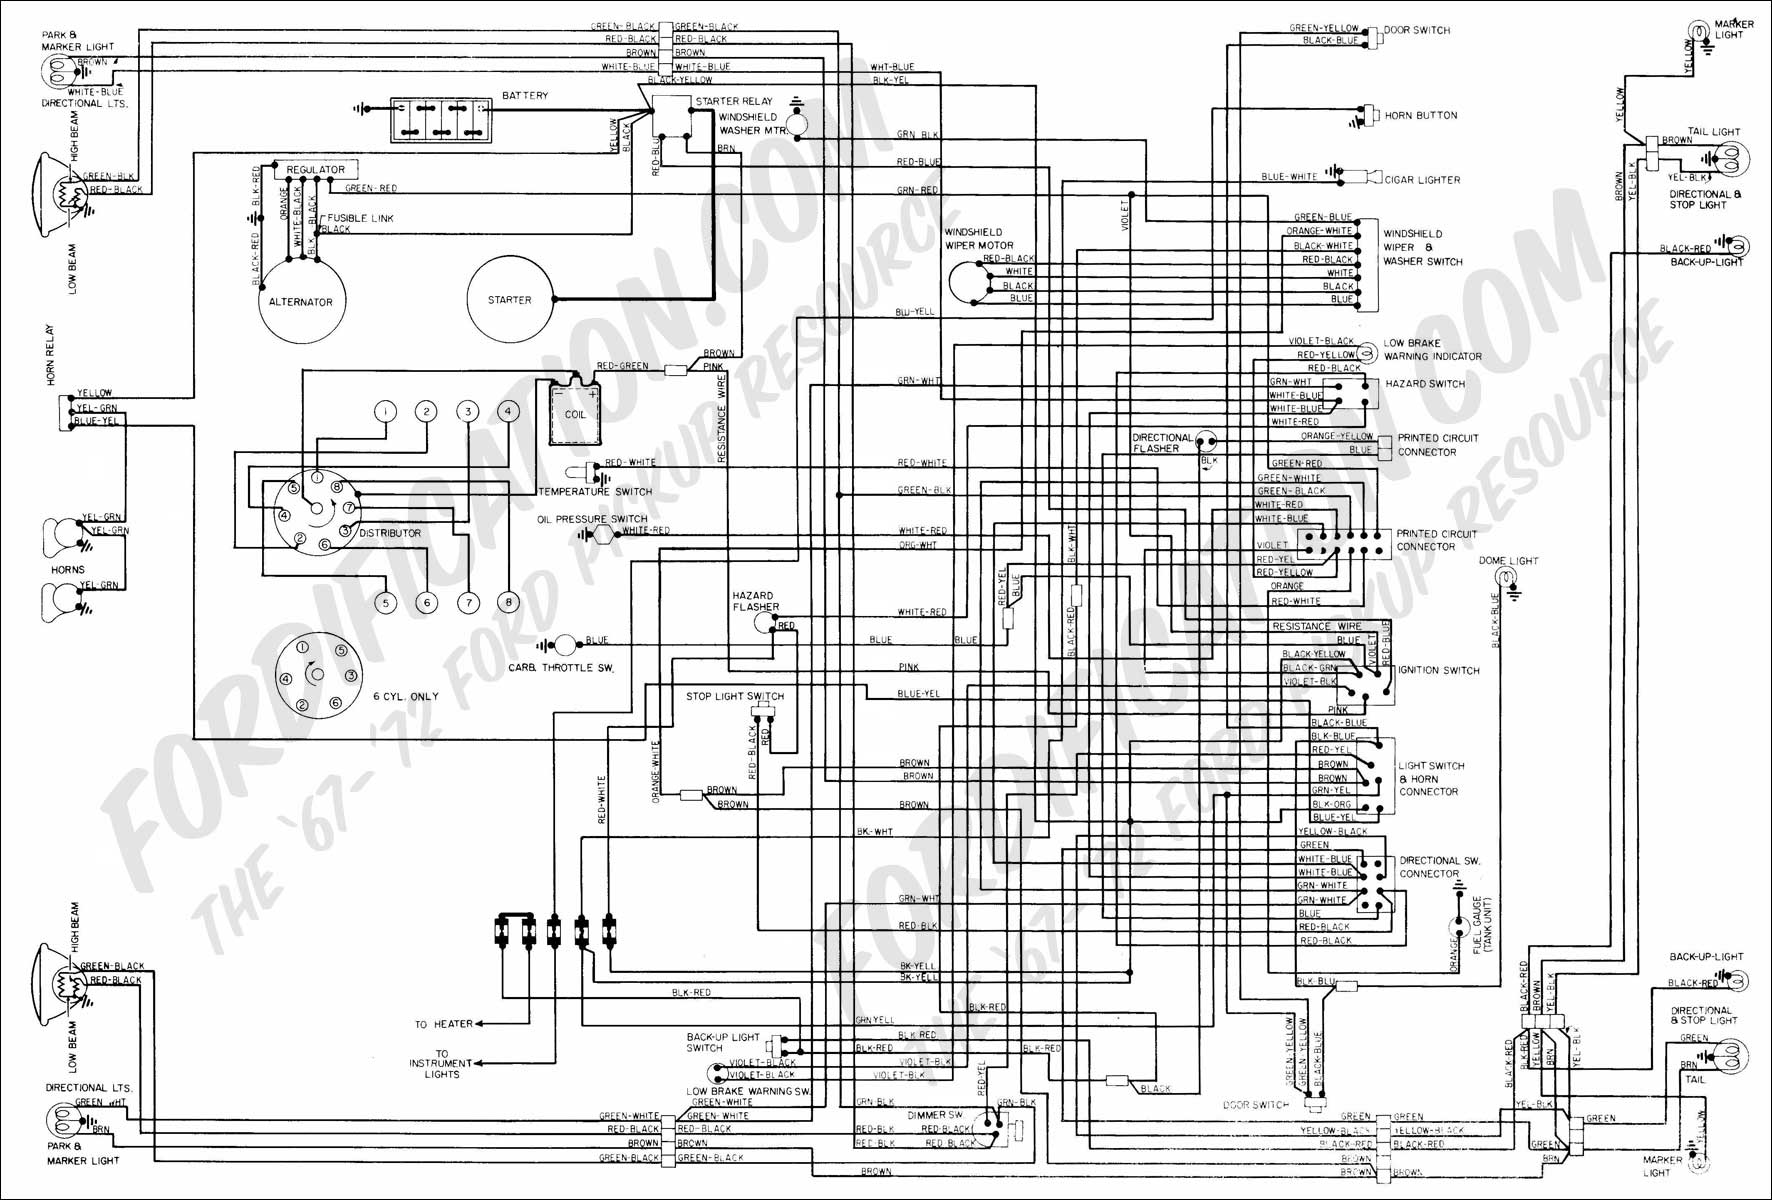 wiring diagram 72_quick ford focus 2008 wiring diagram pdf efcaviation com 2006 ford focus wiring schematic at reclaimingppi.co